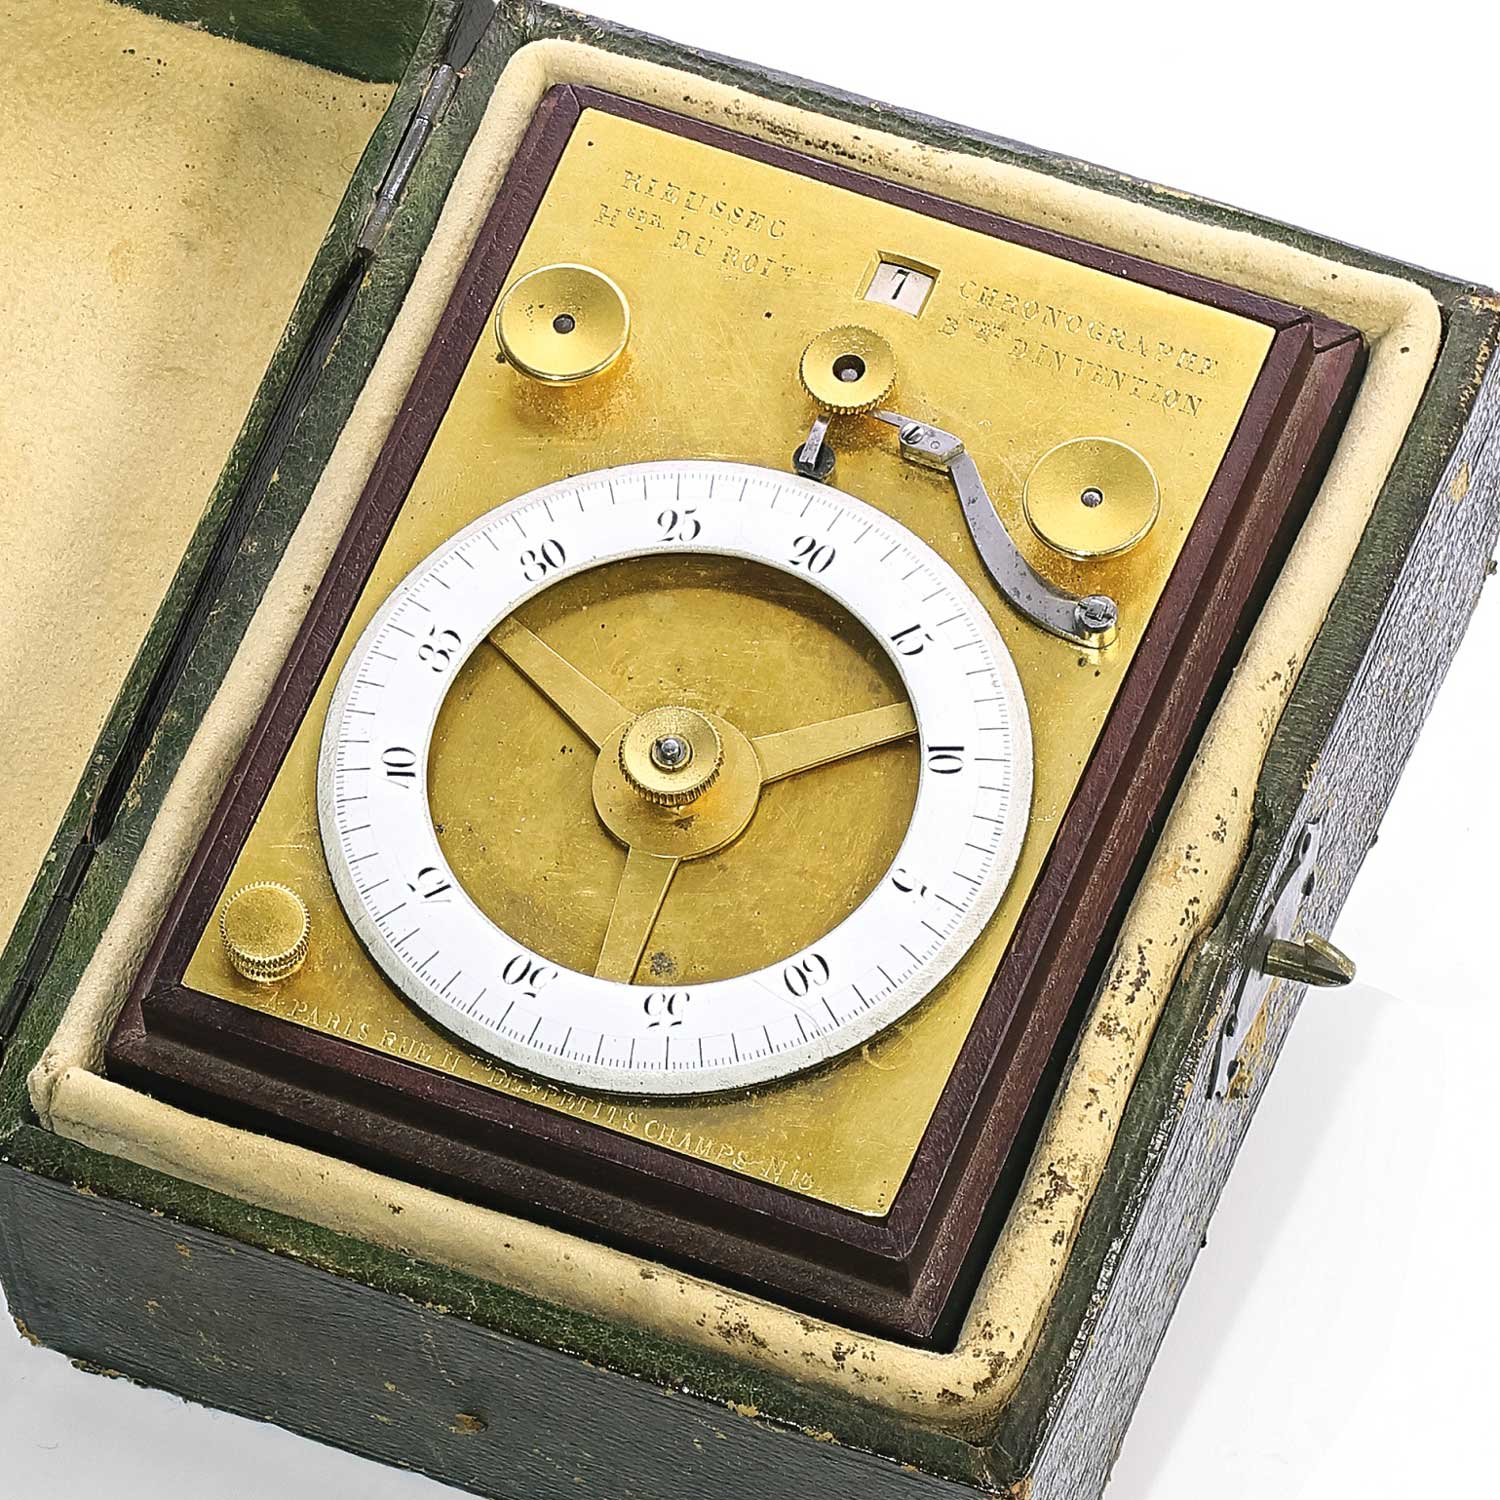 The historically important cylinder inking chronograph made by Nicolas Mathieu Rieussec for the horse races, circa 1823 (Image: sothebys.com)